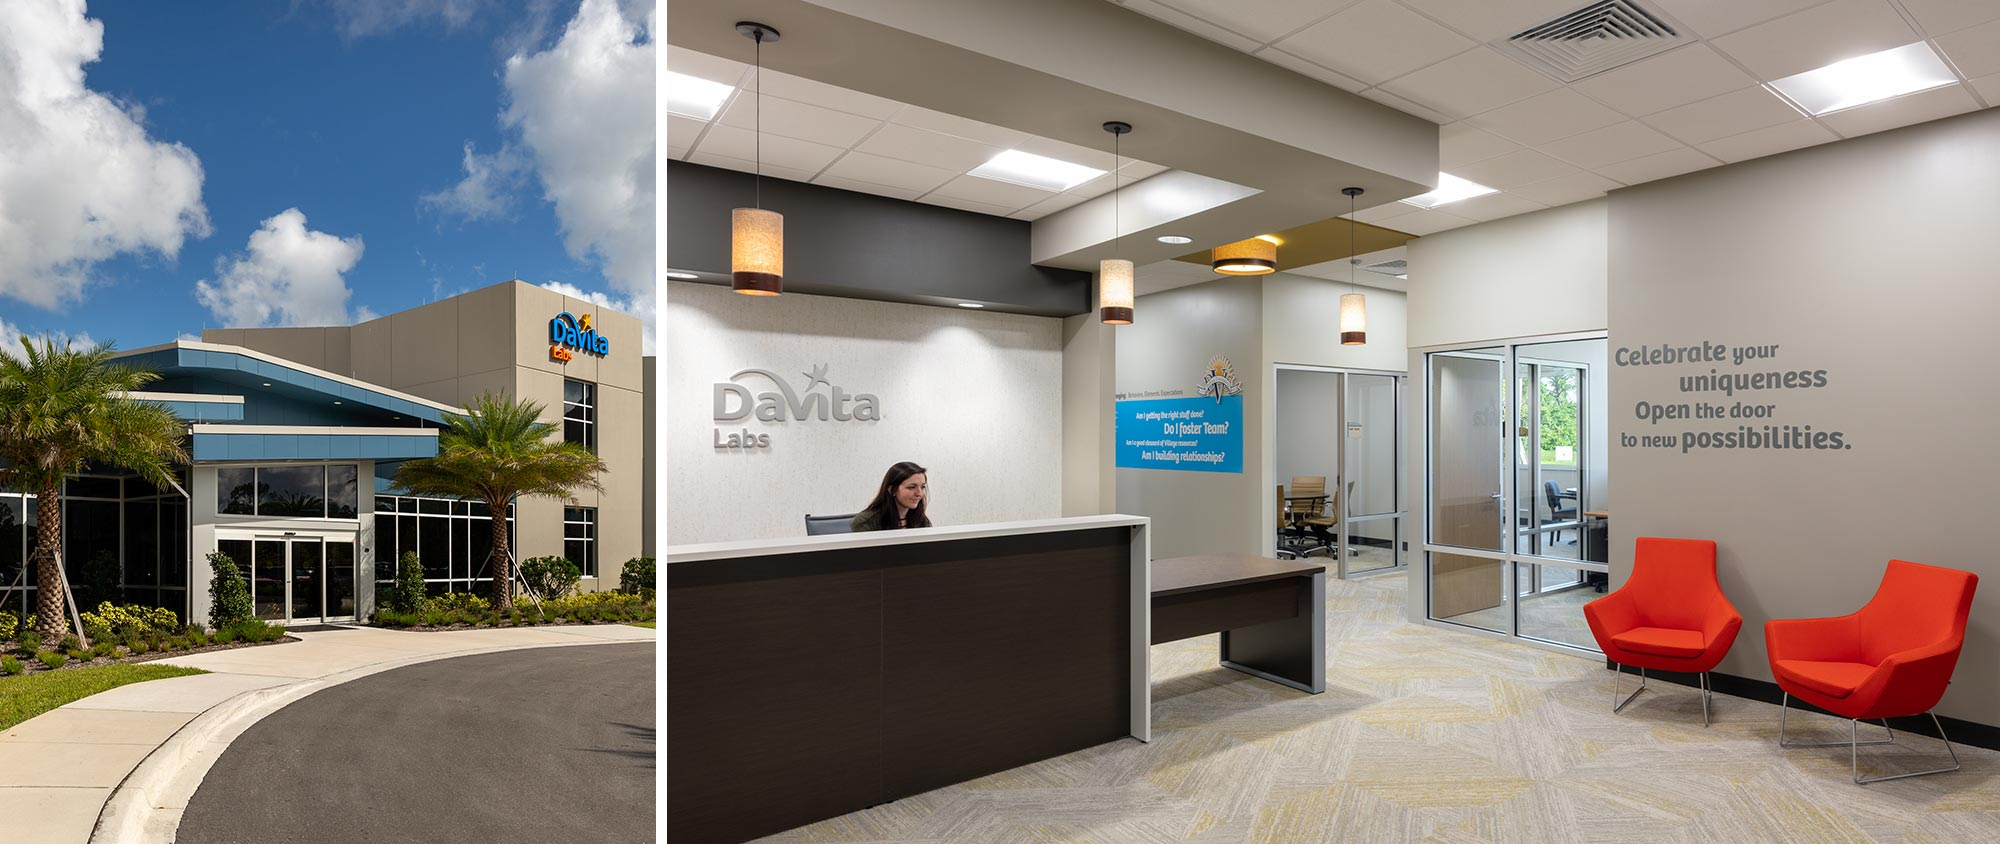 DaVita Labs Consolidated Campus